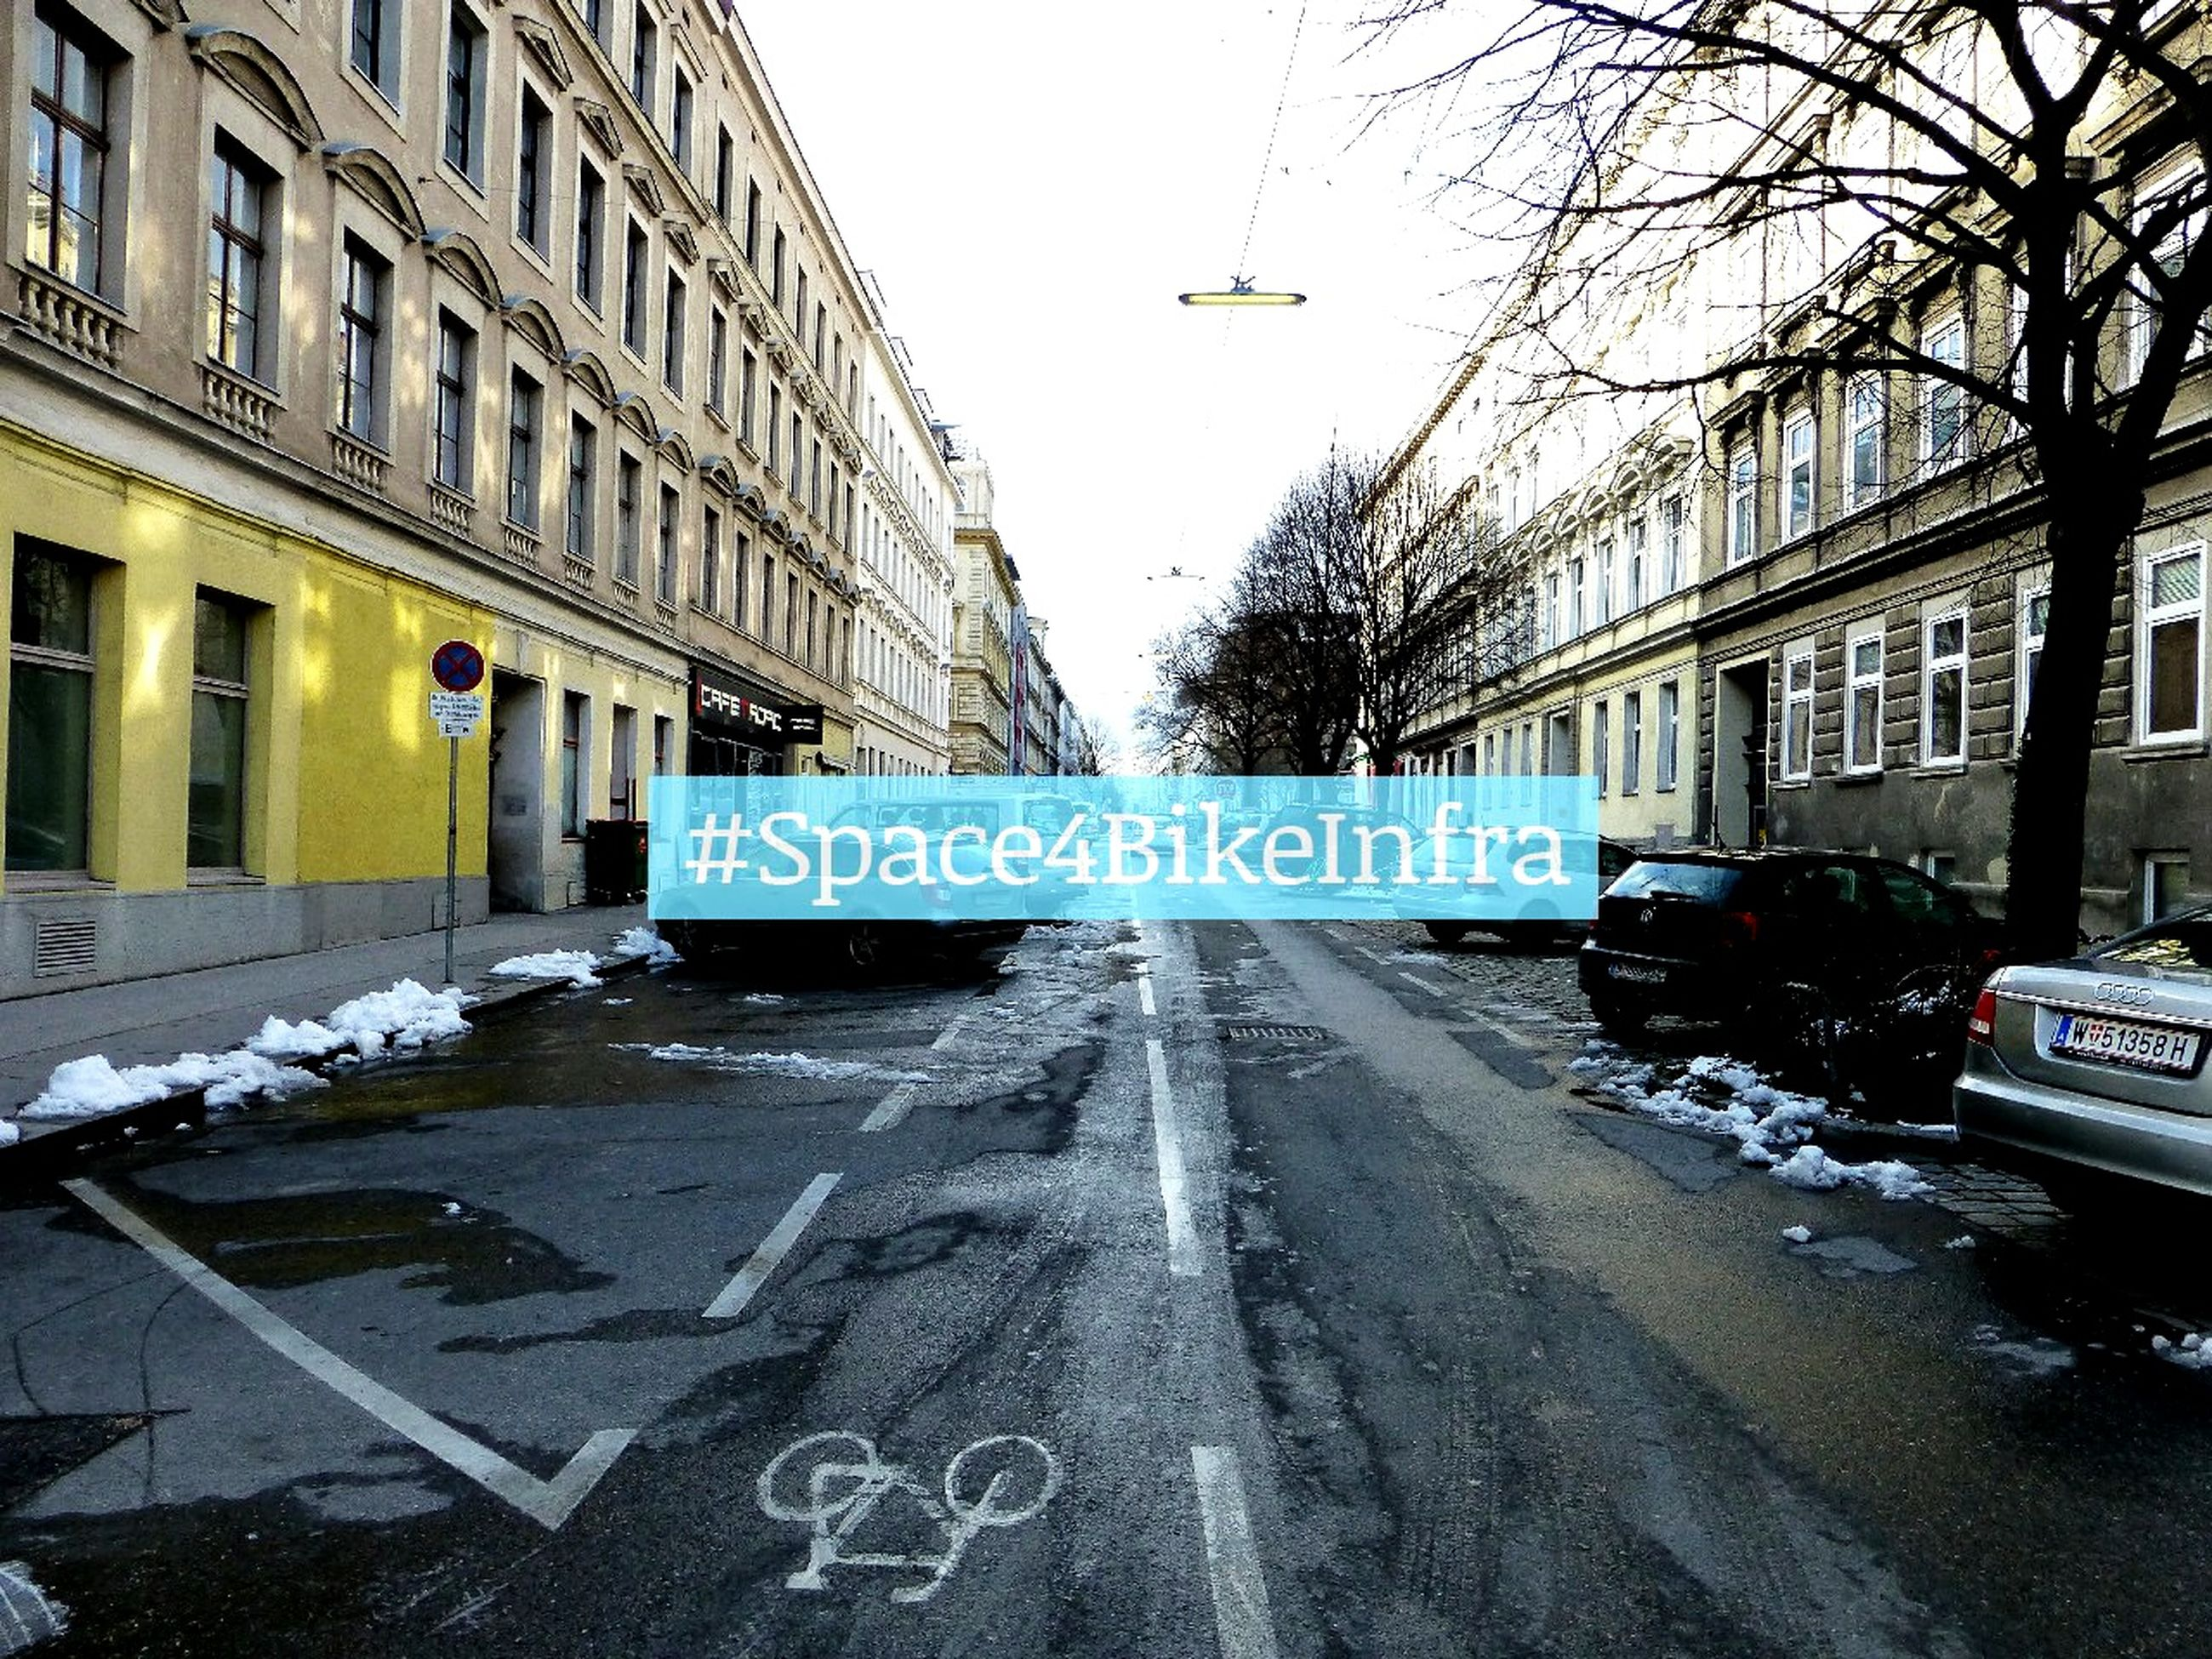 architecture, building exterior, built structure, transportation, street, city, car, road, snow, winter, bare tree, season, clear sky, cold temperature, text, road sign, land vehicle, mode of transport, city street, building